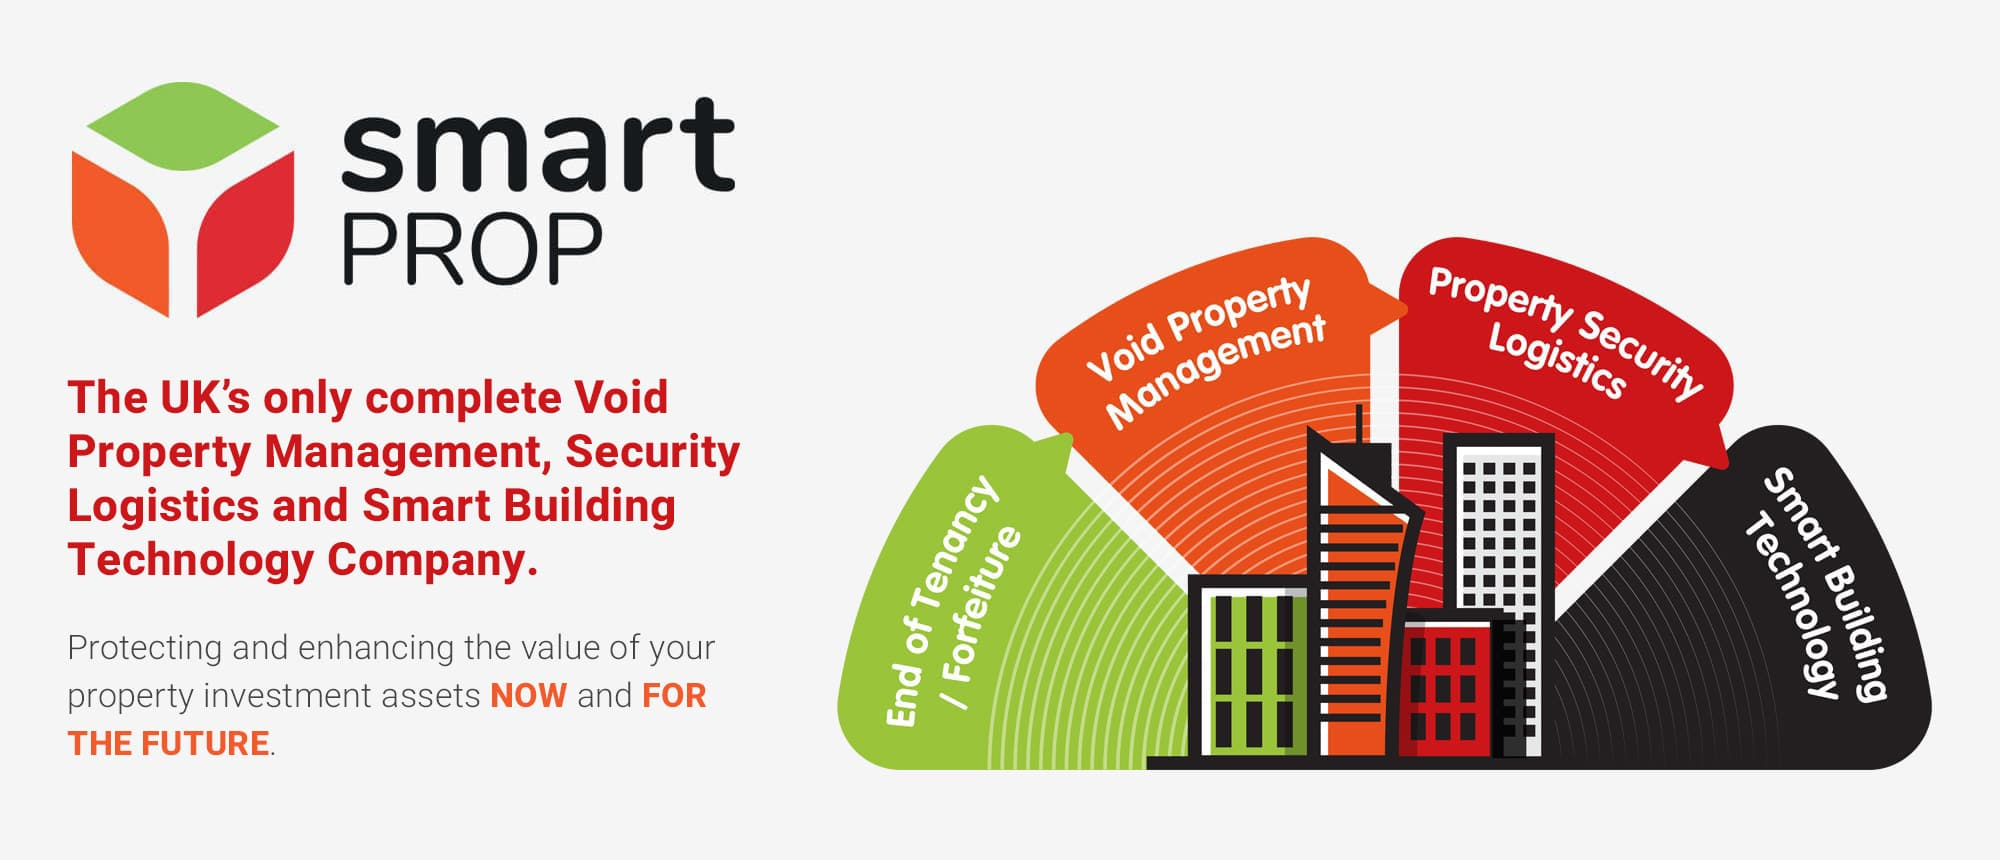 smartPROP: The UK's Only Complete Void Property Solution